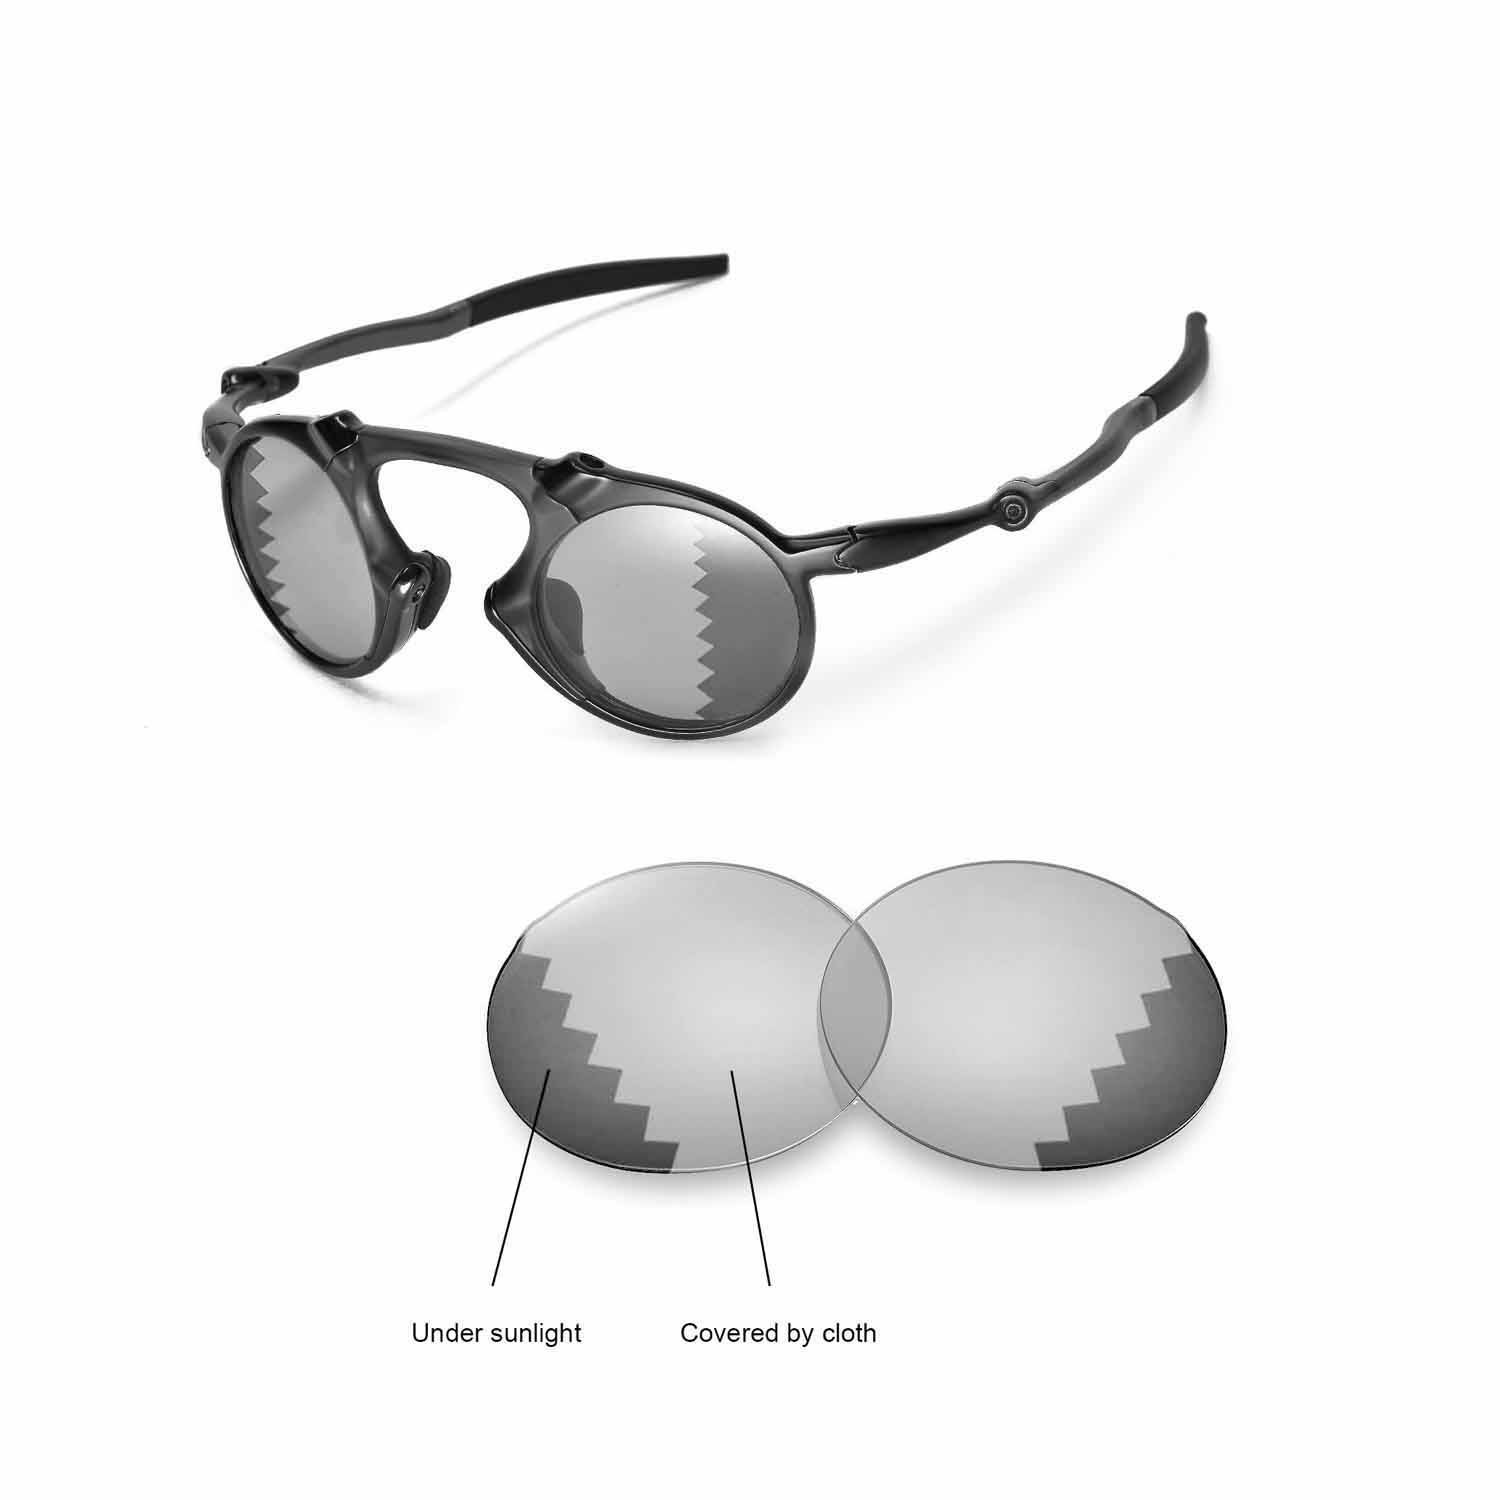 9f3c7cb762 Galleon - Walleva Replacement Lenses Oakley Madman Sunglasses - Multiple  Options Available (Transition photochromic - Polarized)